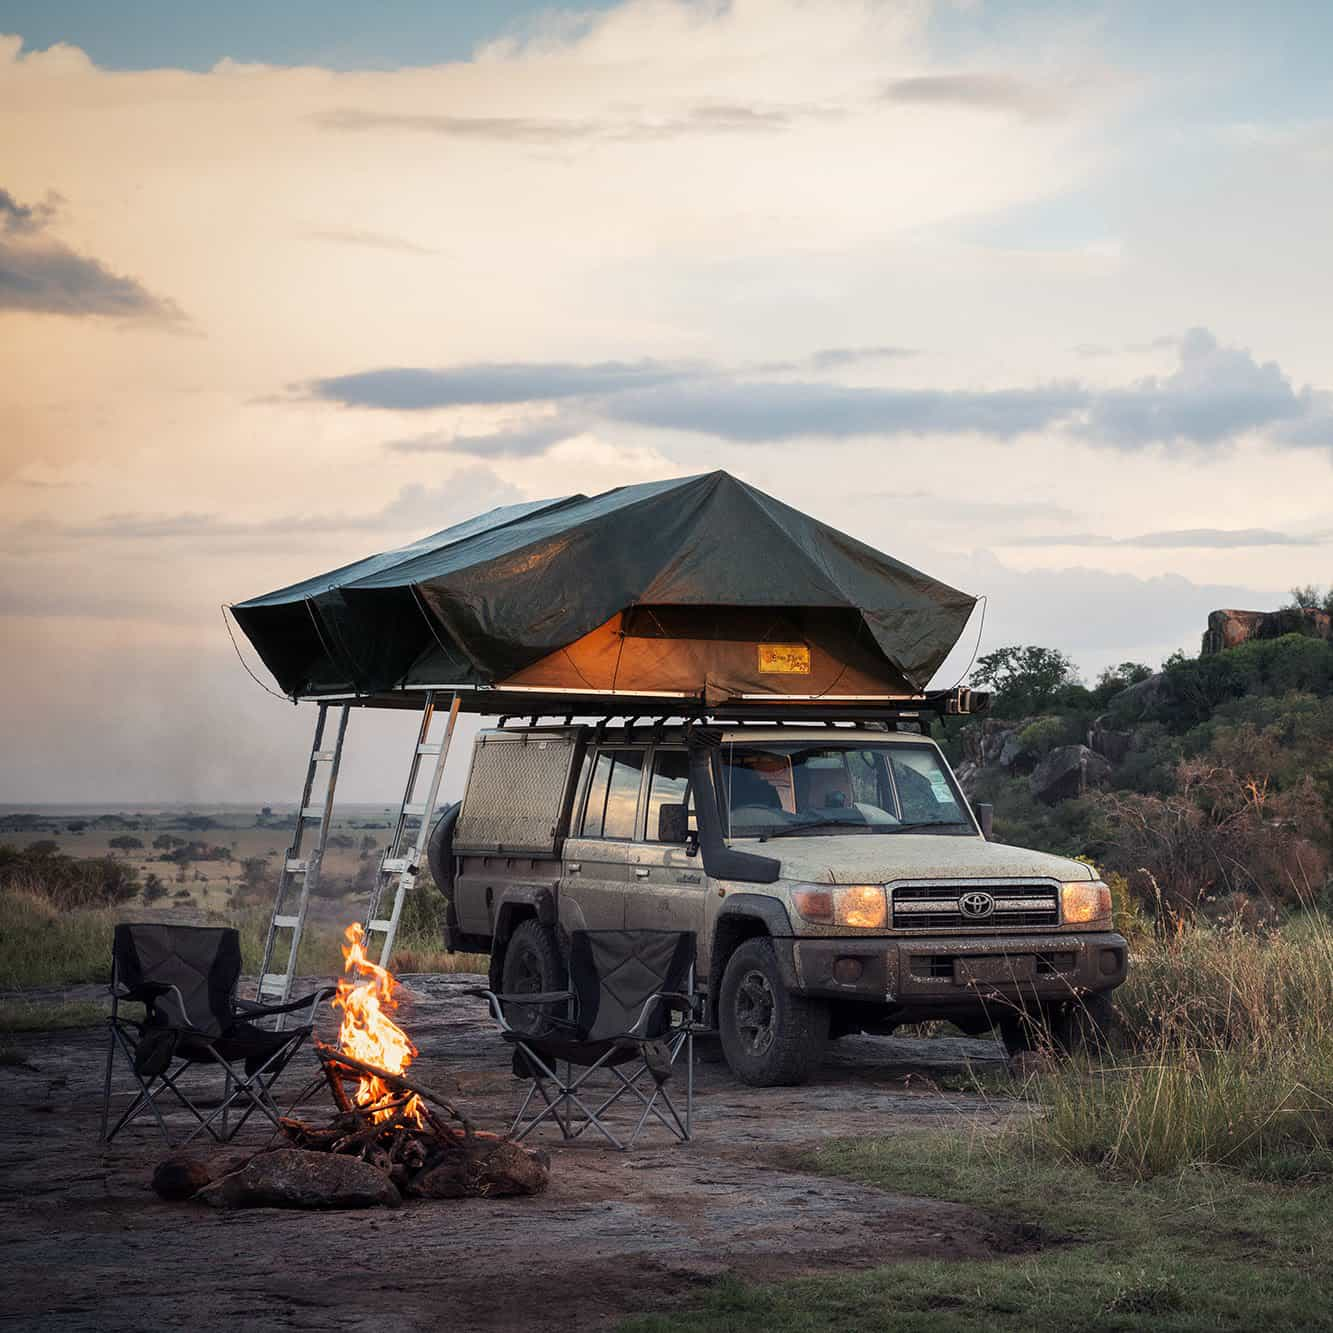 Safari Drive Land Cruiser with roof tent and camp set up at dusk